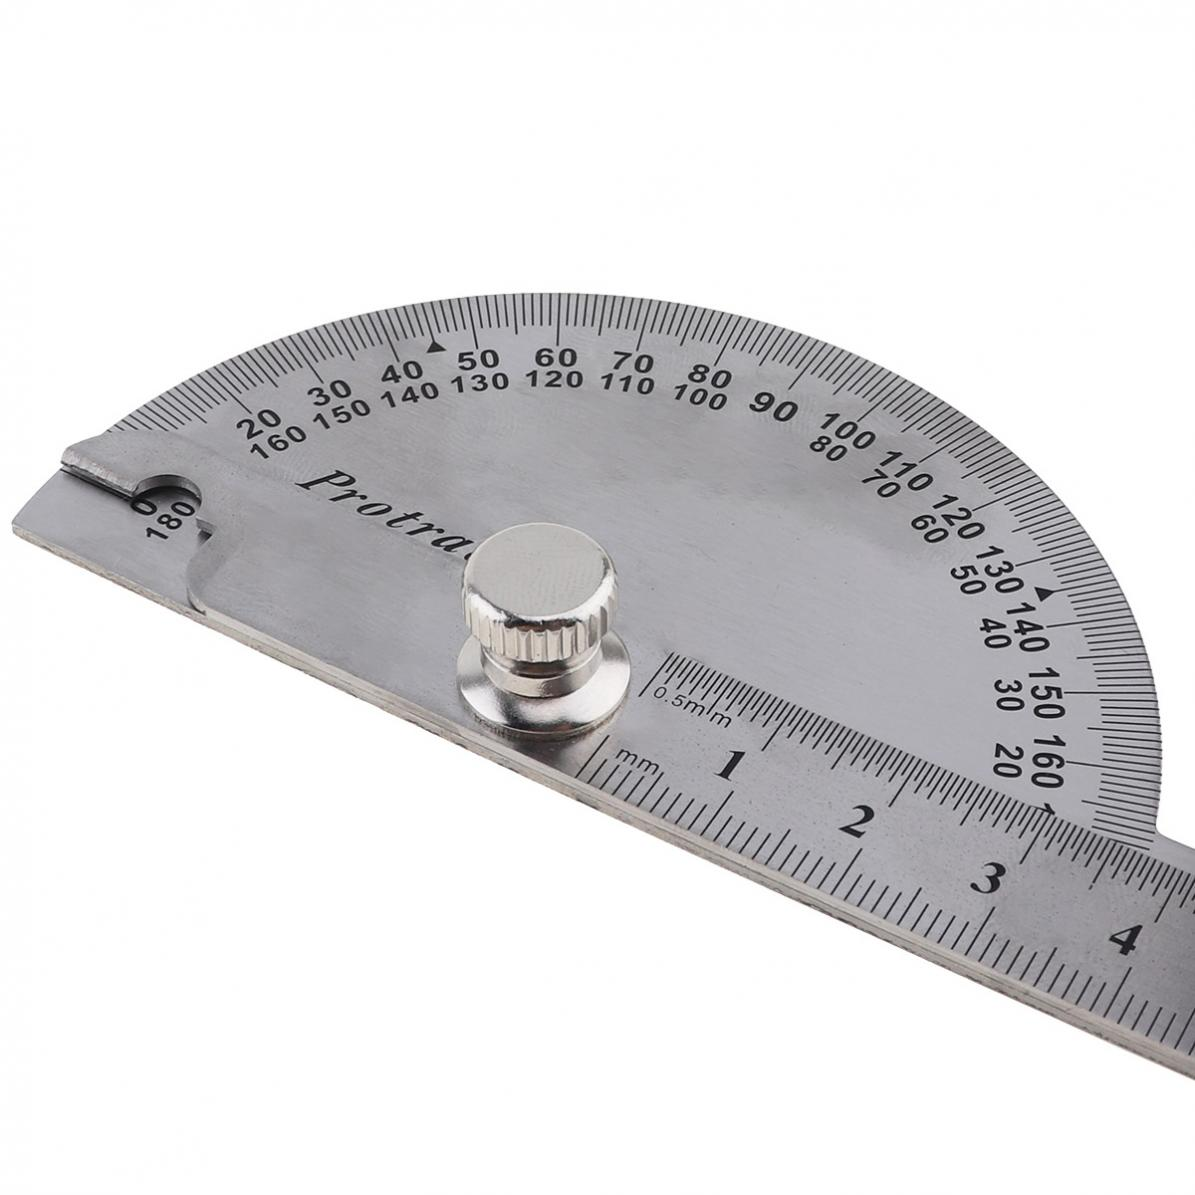 0-180-Stainless-Steel-Round-Head-Dual-Arm-Protractor-Angle-Finder-Rotary-Ruler miniature 7